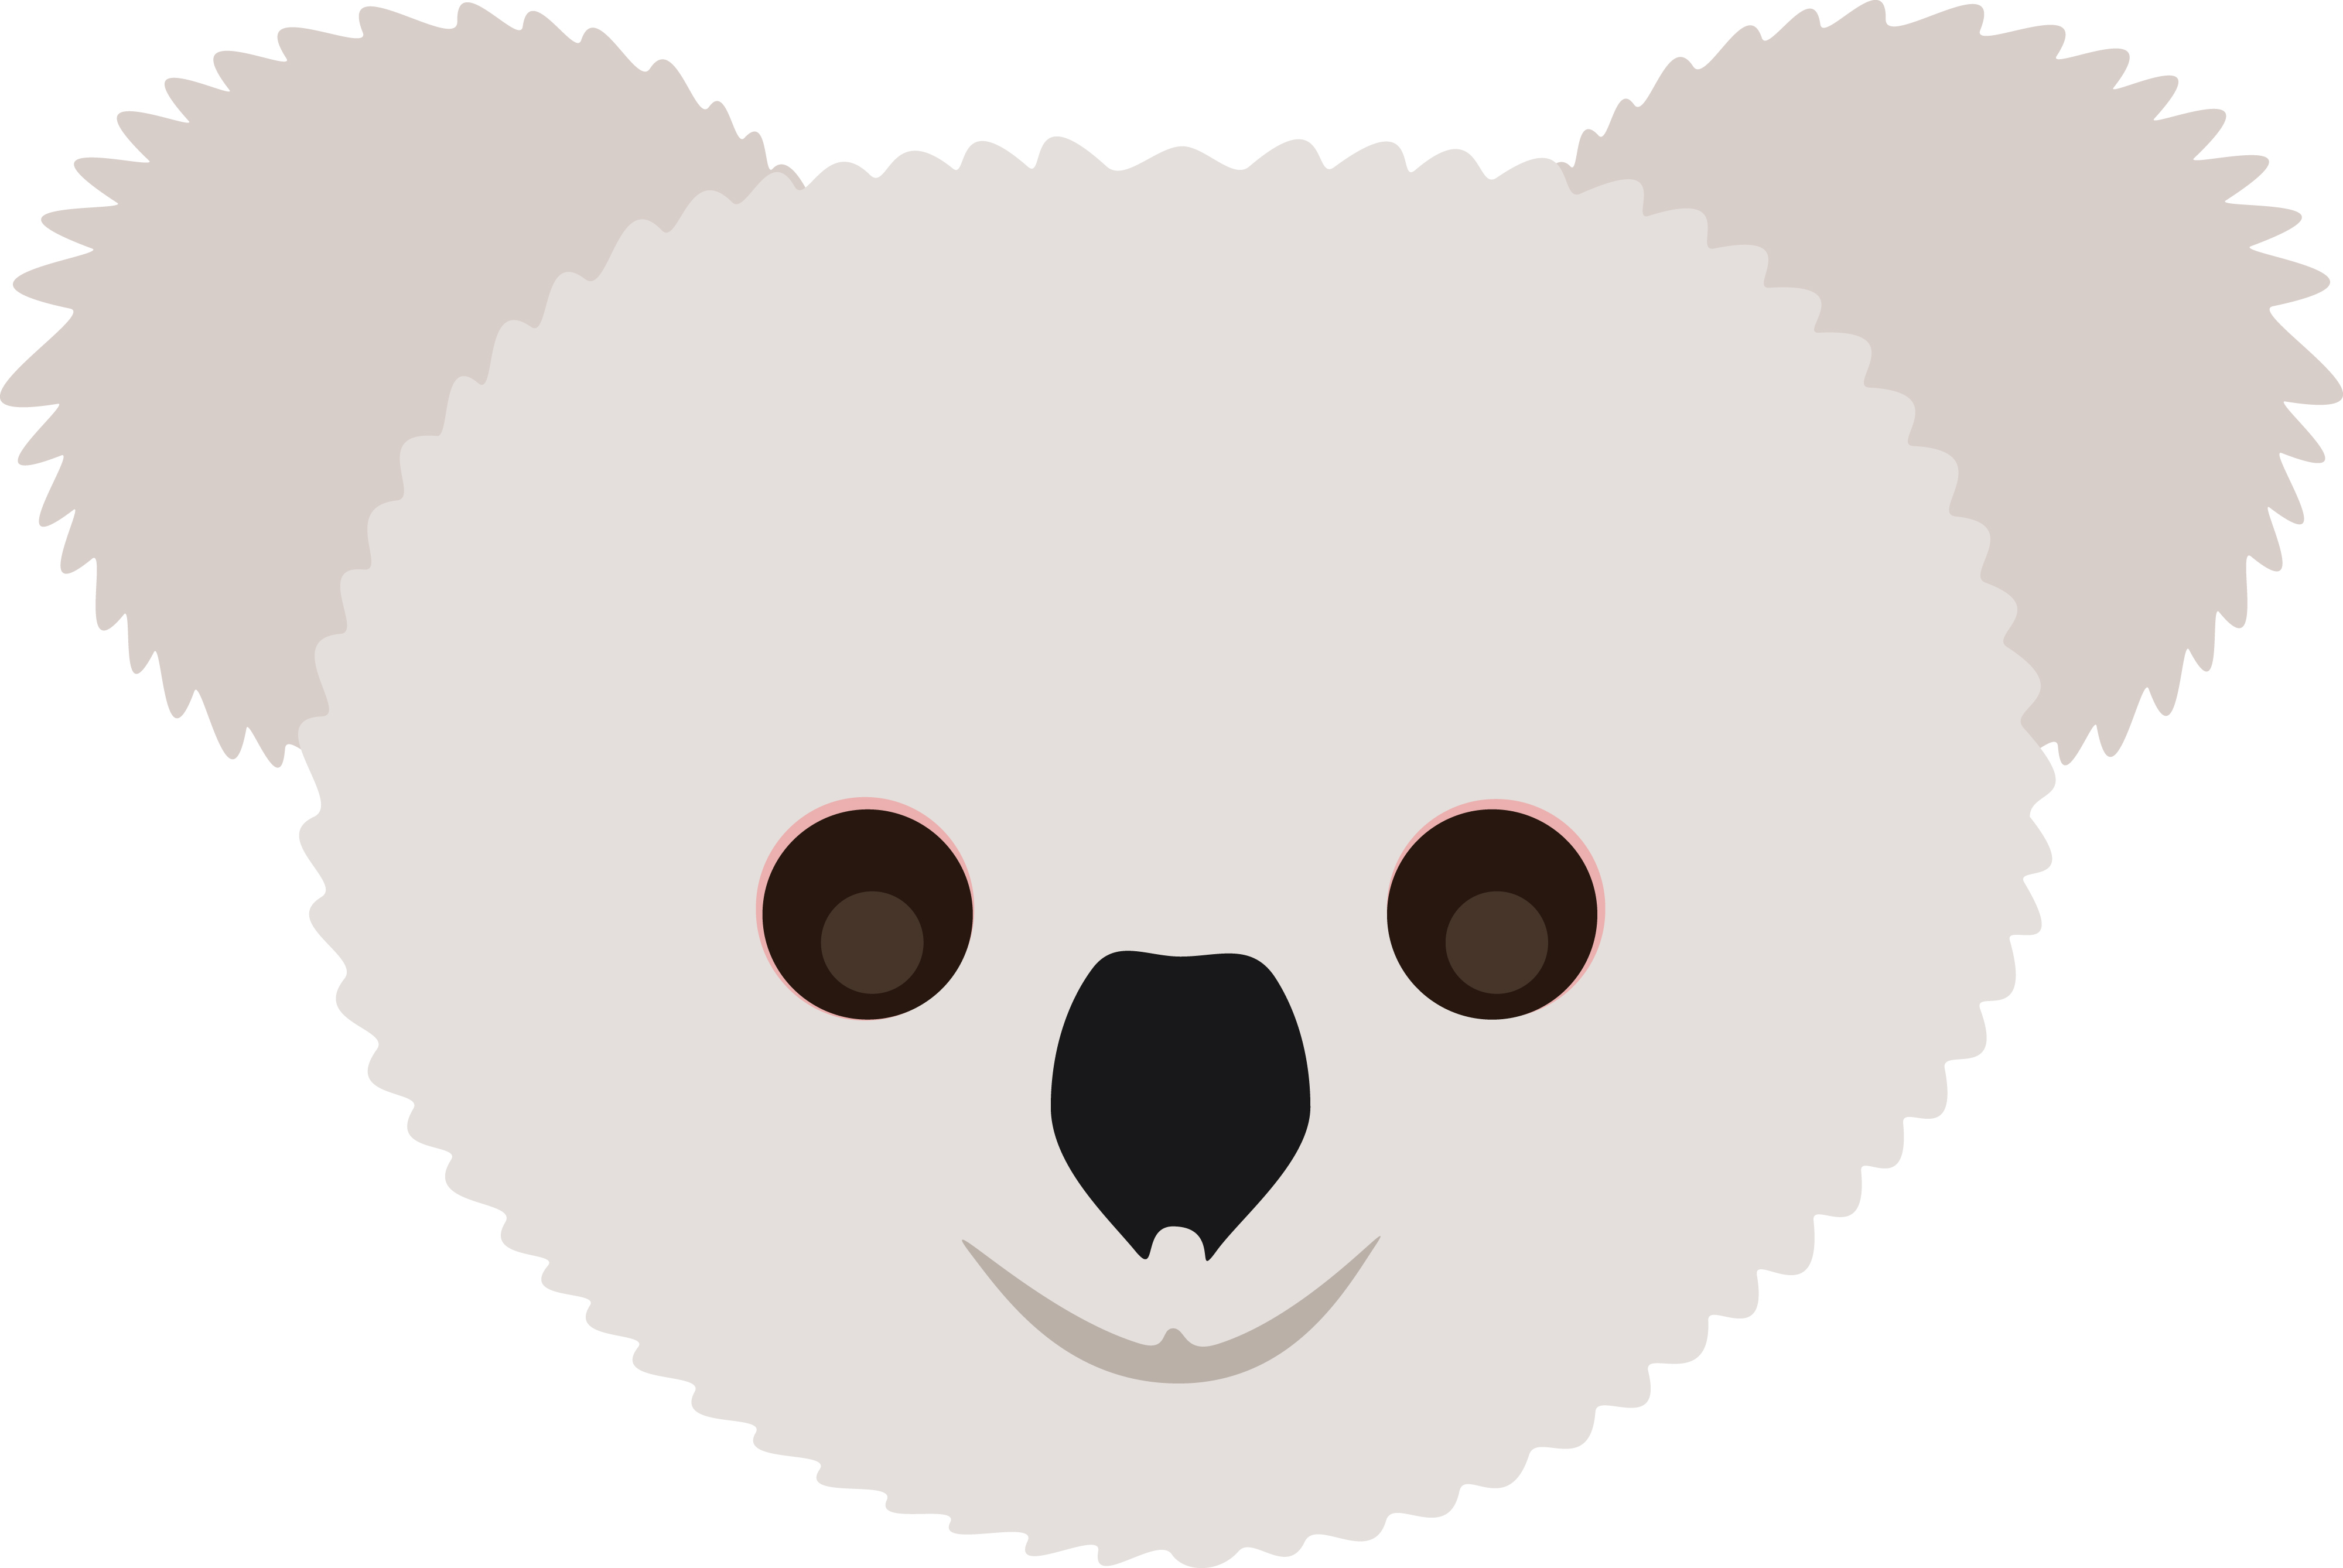 Download Free Clipart Of A koala face